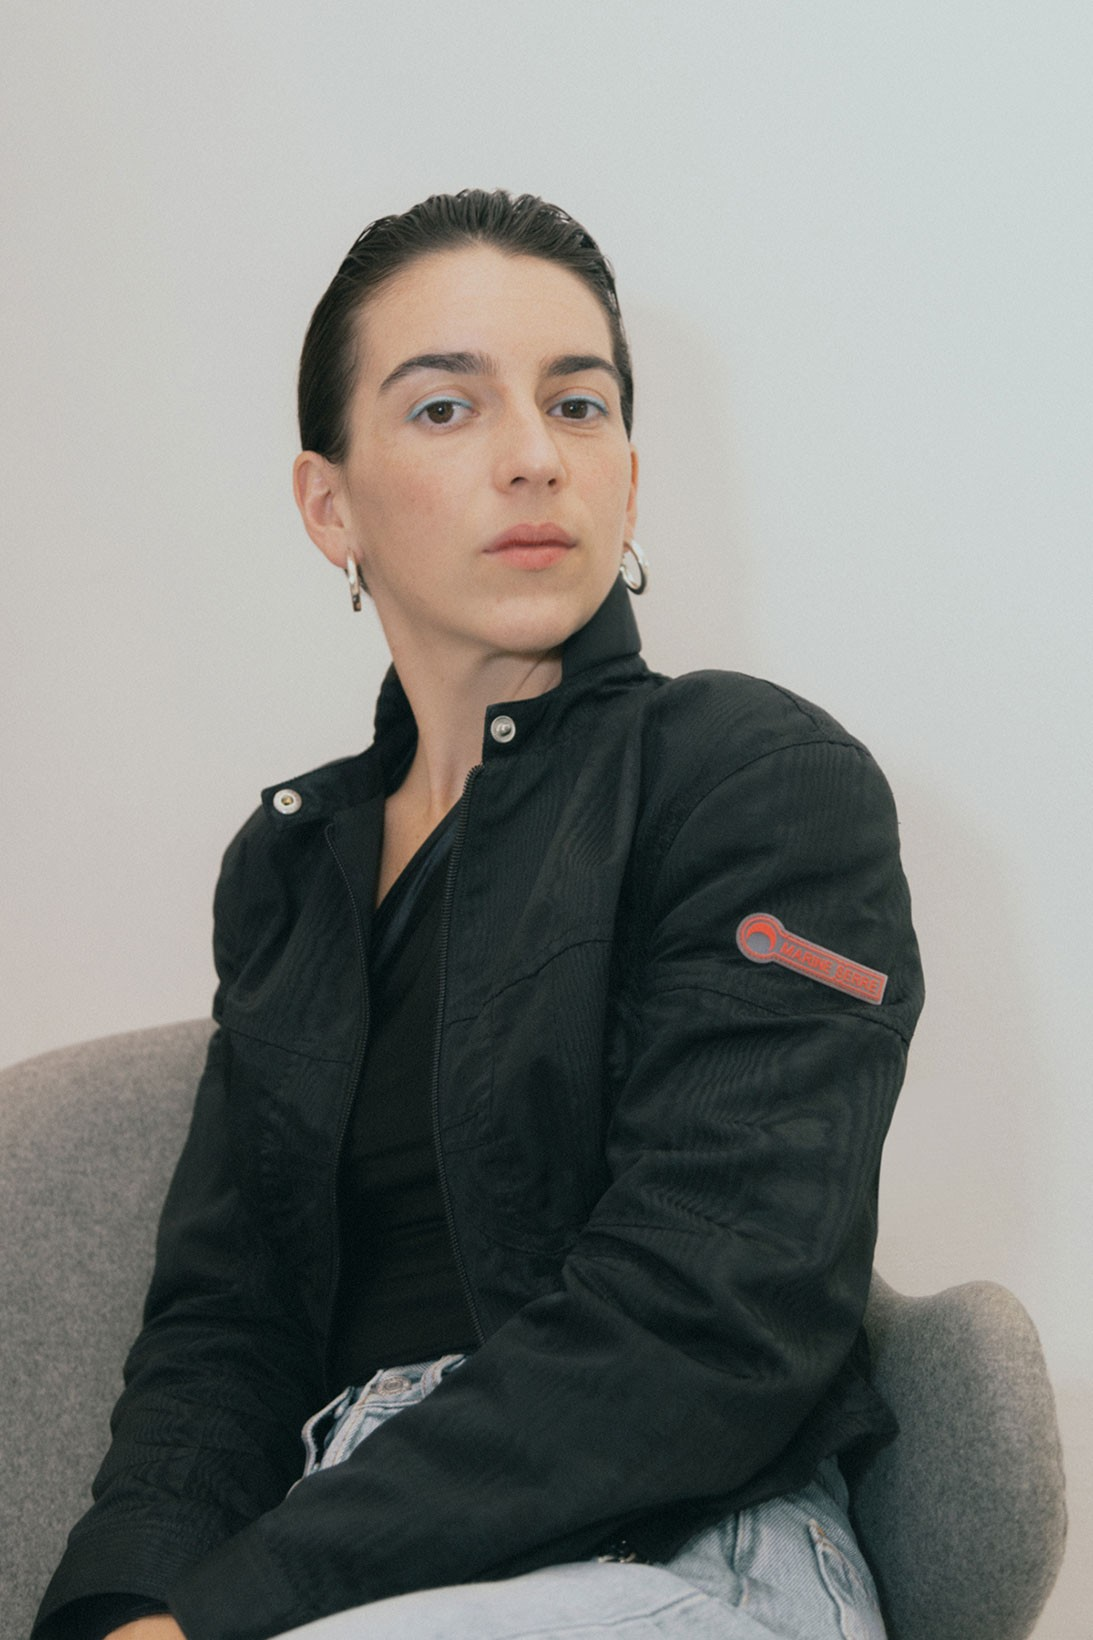 marine serre interview joyce capsule collaboration exclusive hong kong catsuit